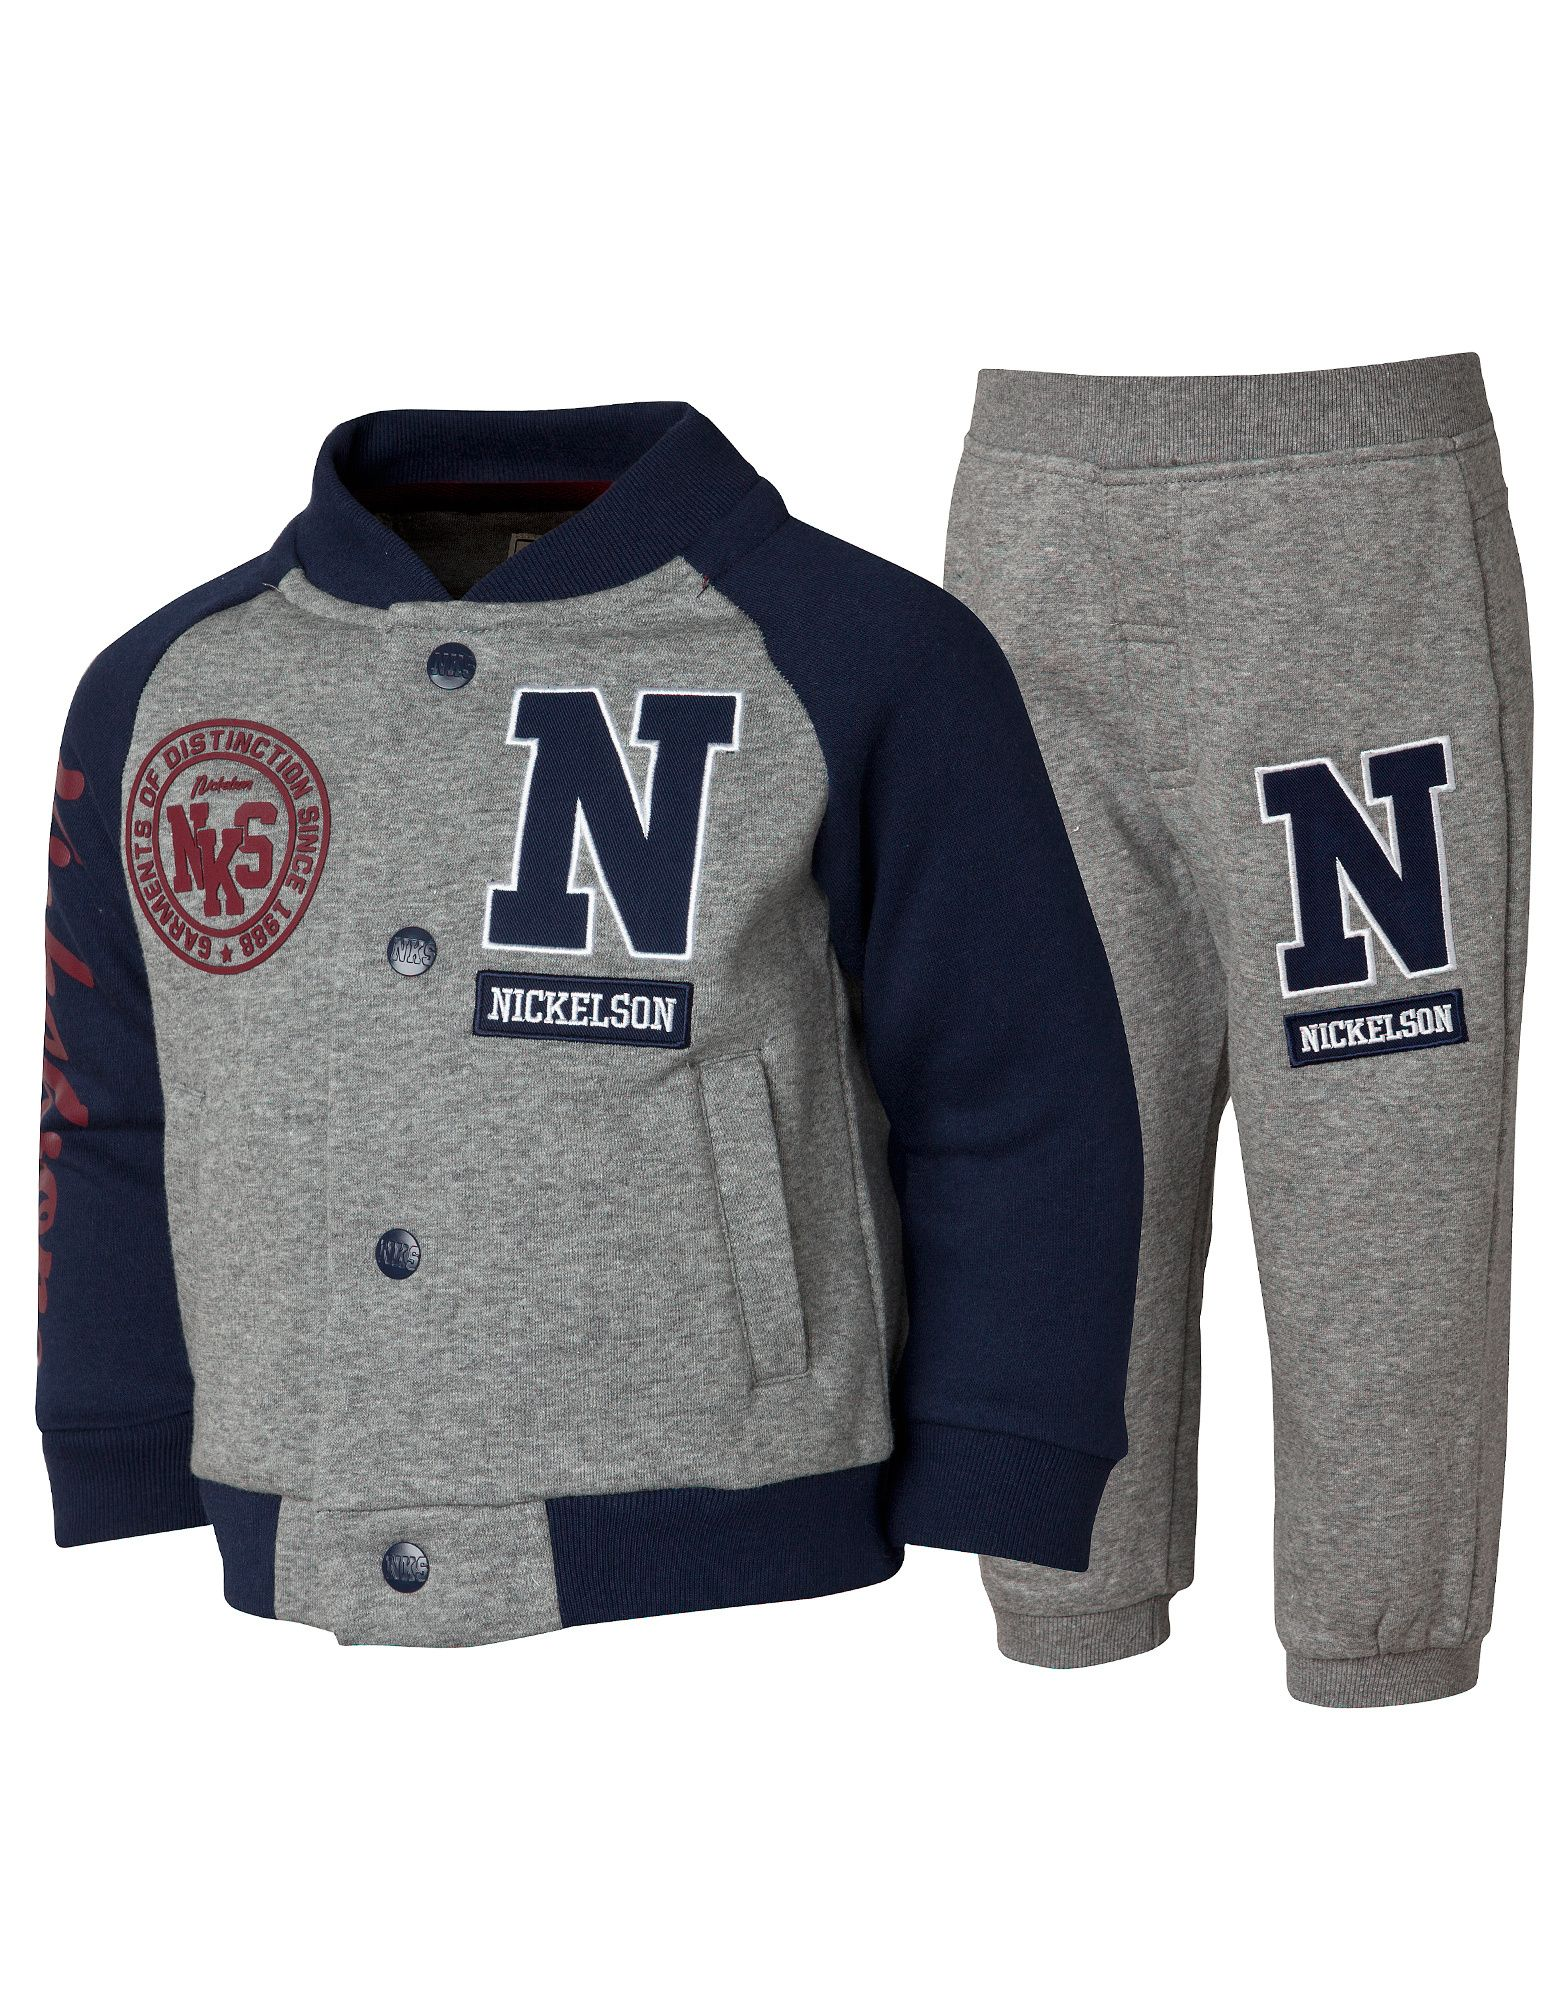 Nickelson Union Baseball Suit Infants